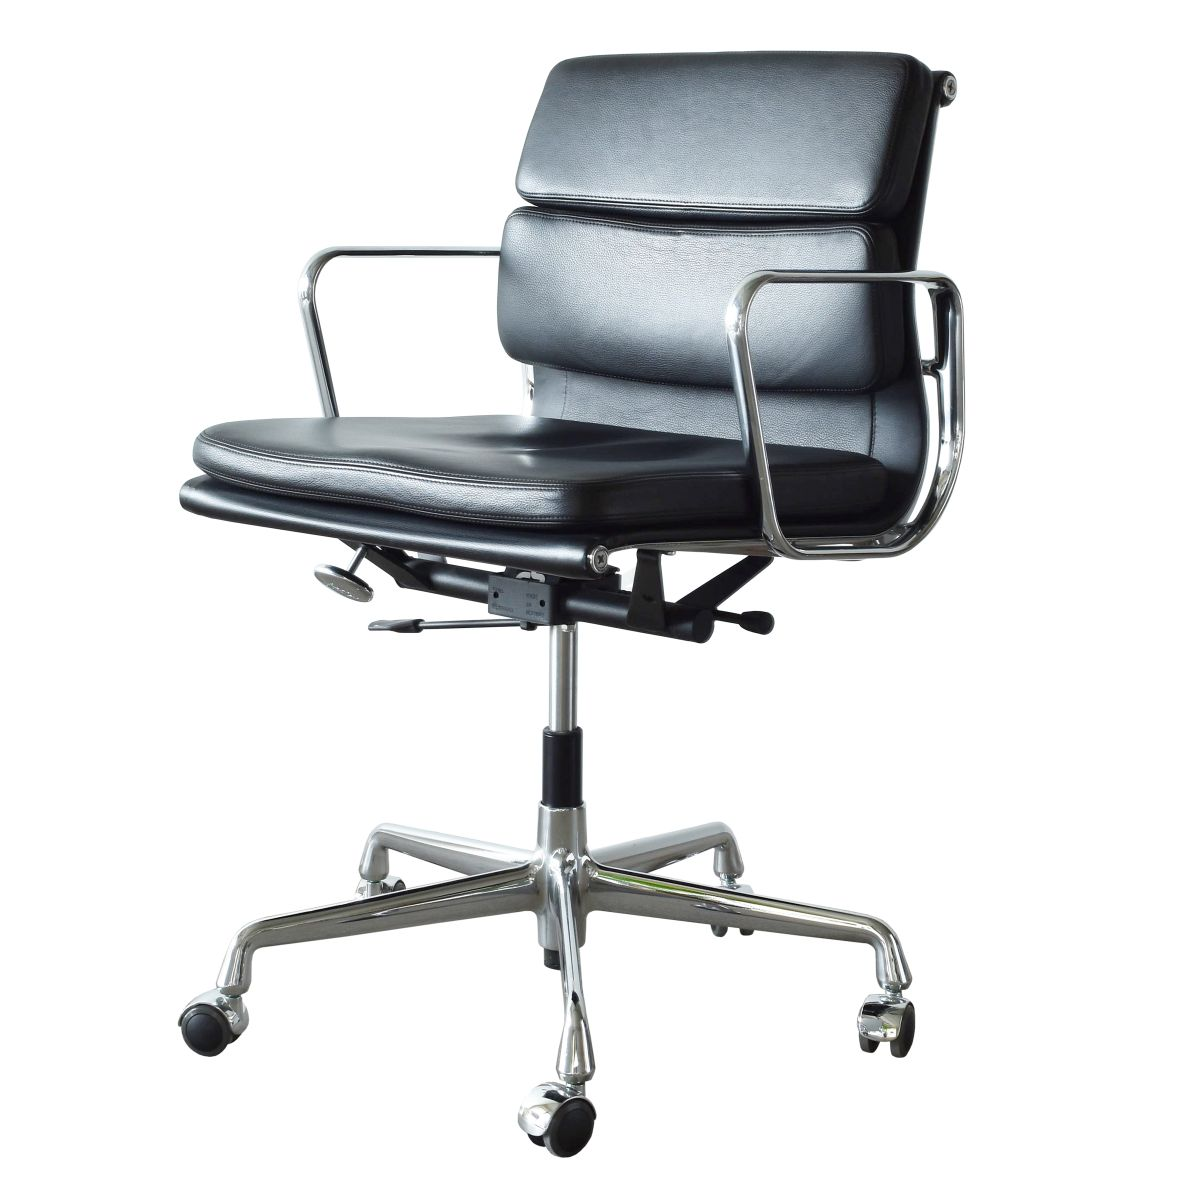 Ea217 soft pad management chair by charles and ray eames for Eames chair deutschland